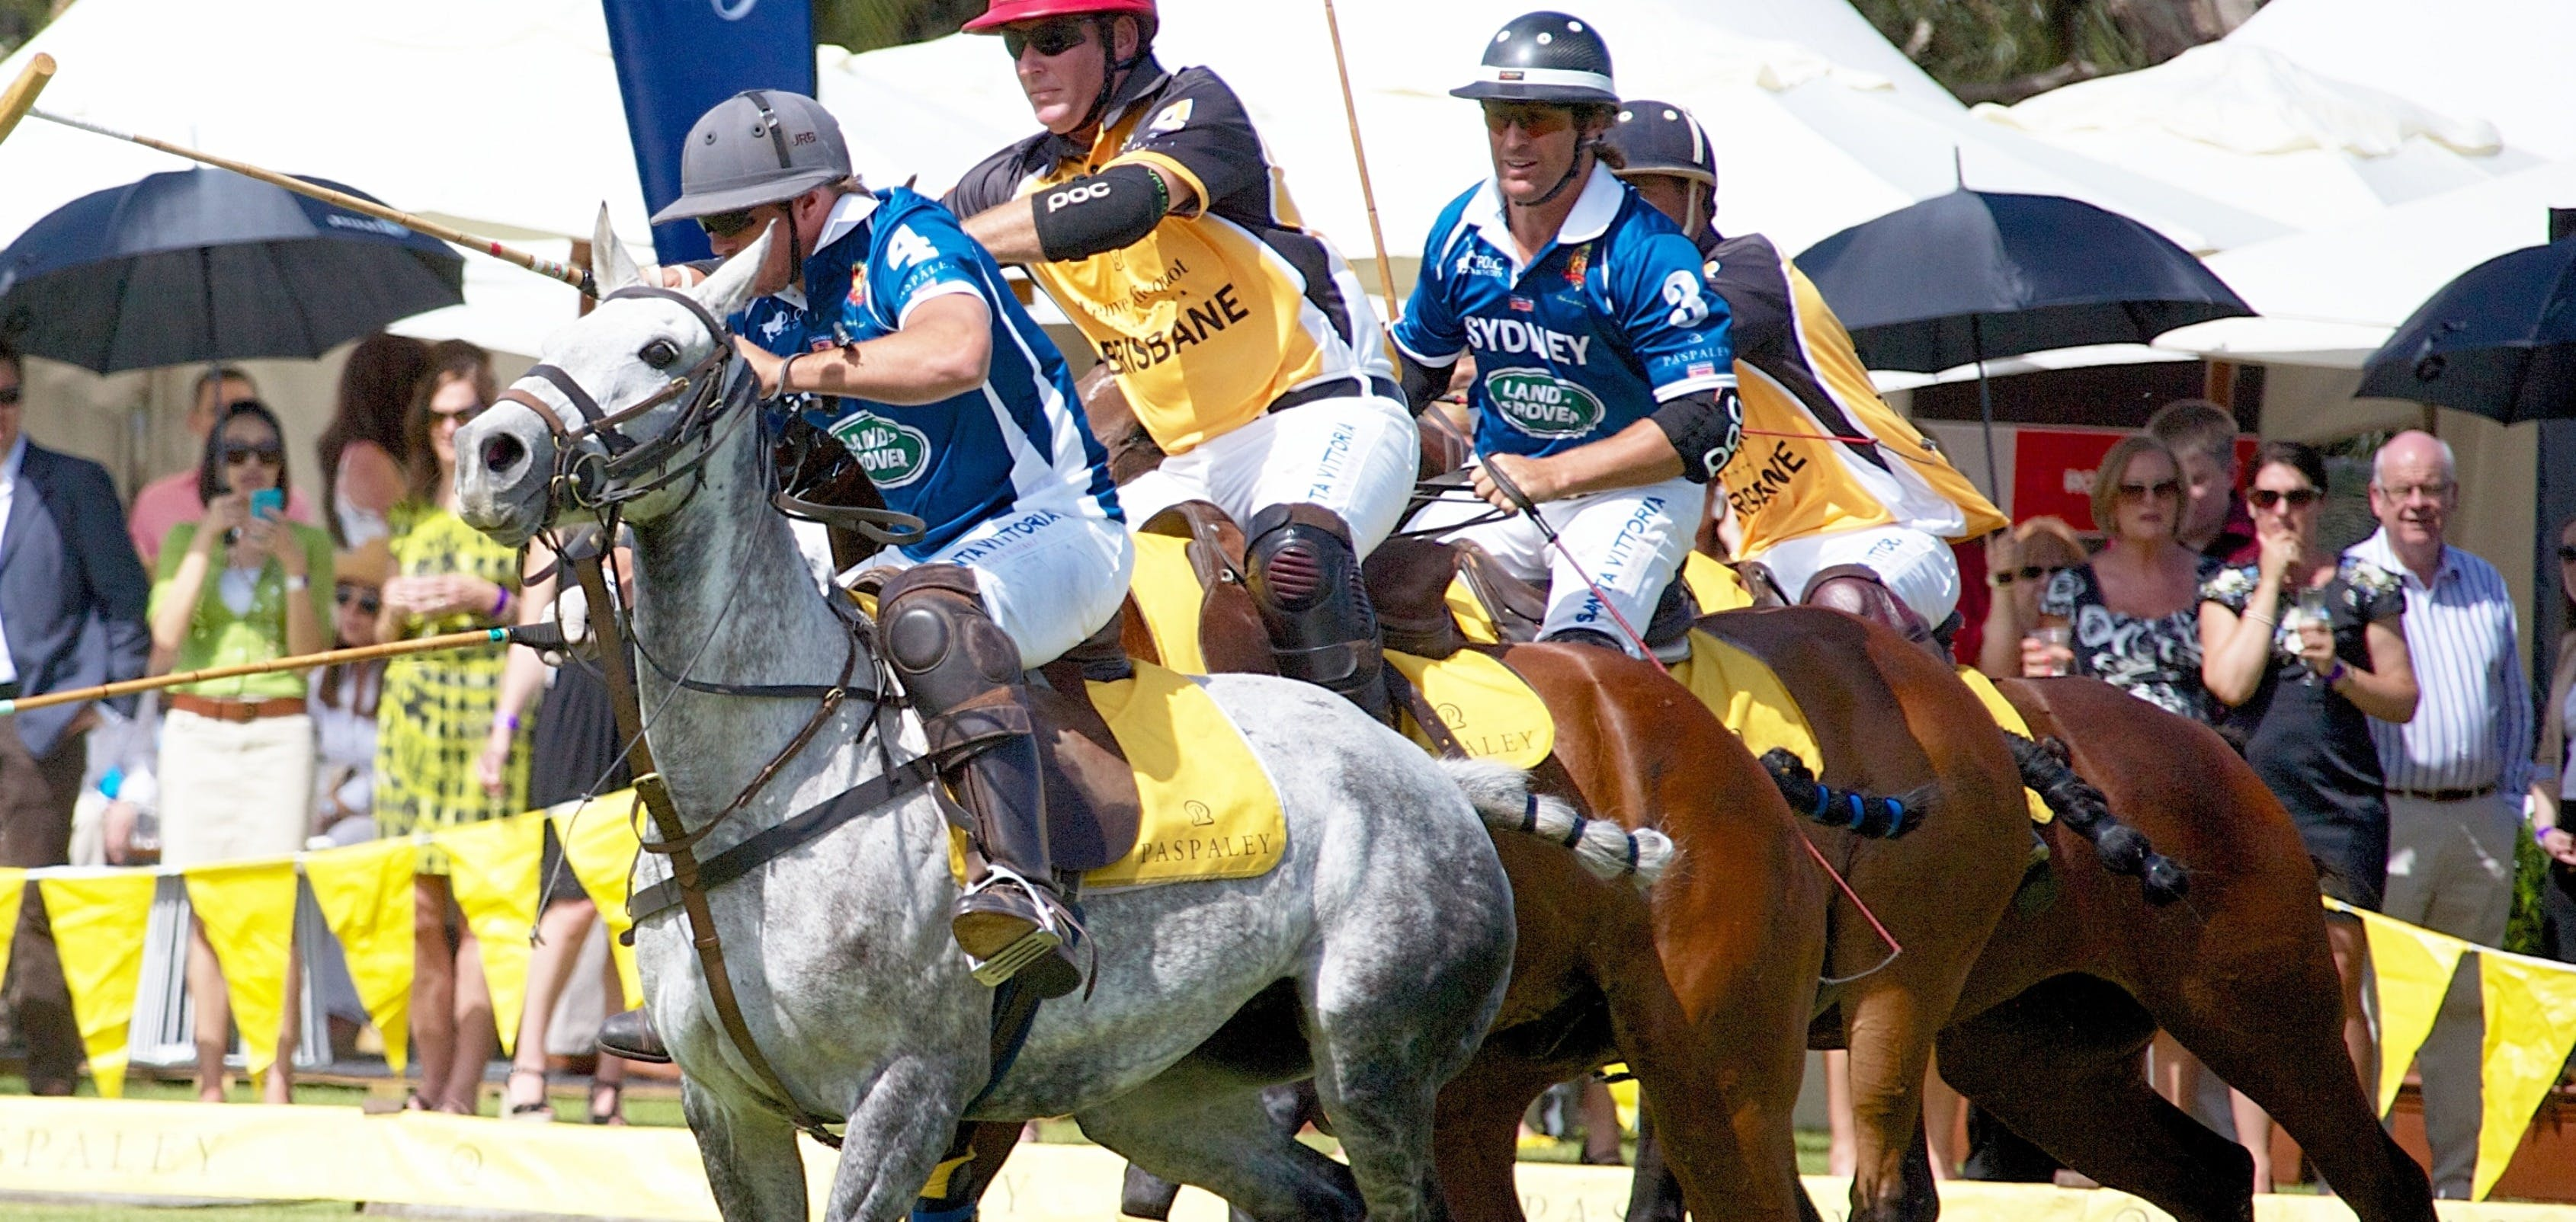 Land Rover Polo in the City Brisbane - ACT Tourism